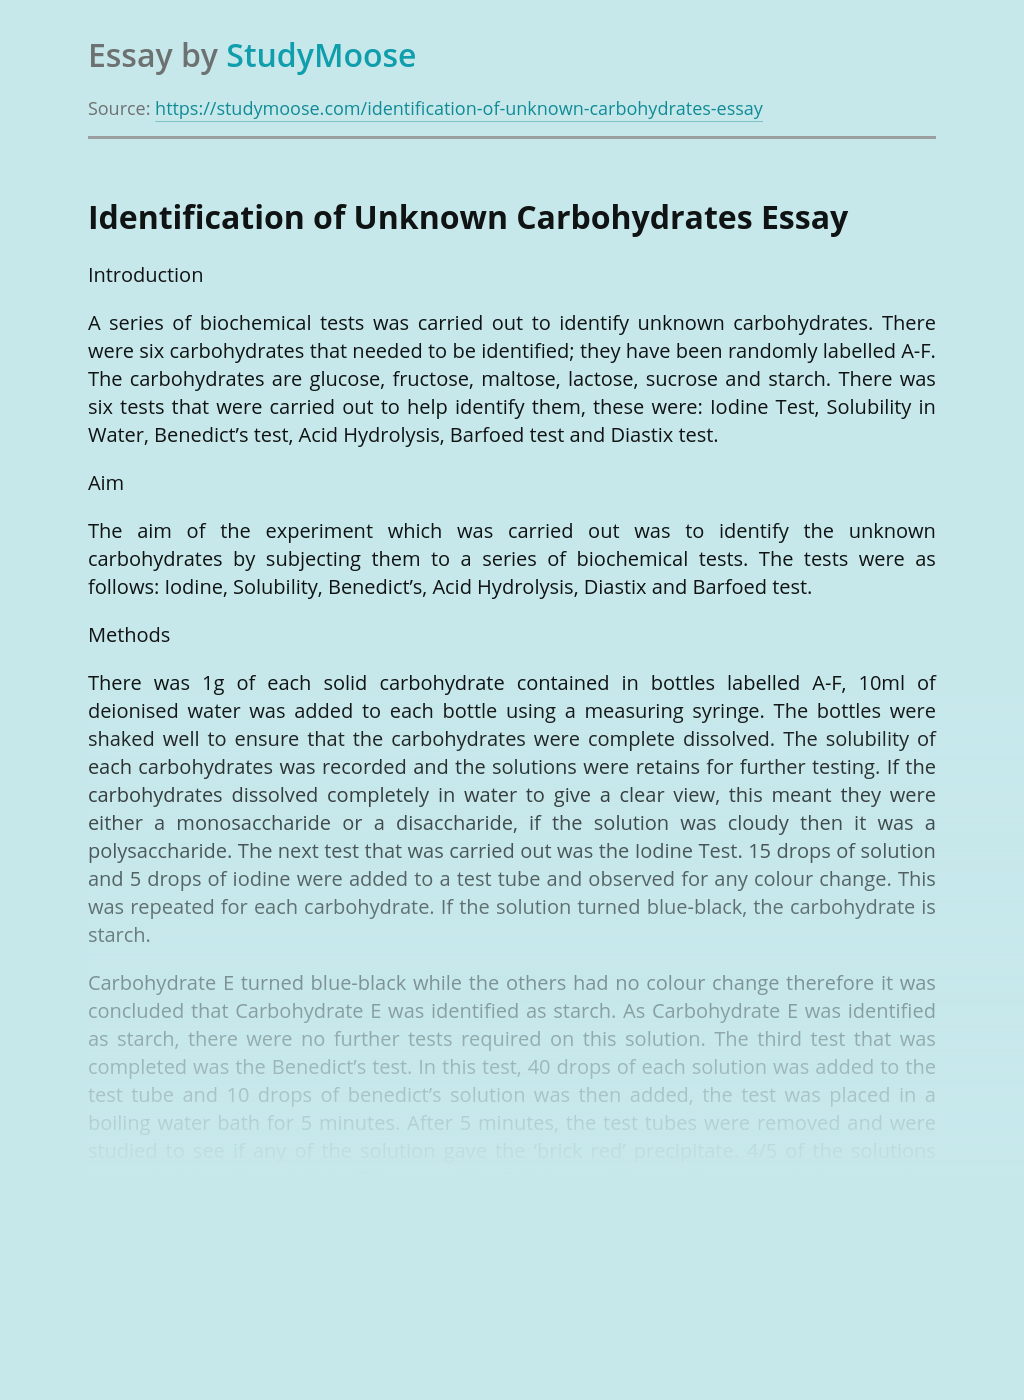 Identification of Unknown Carbohydrates